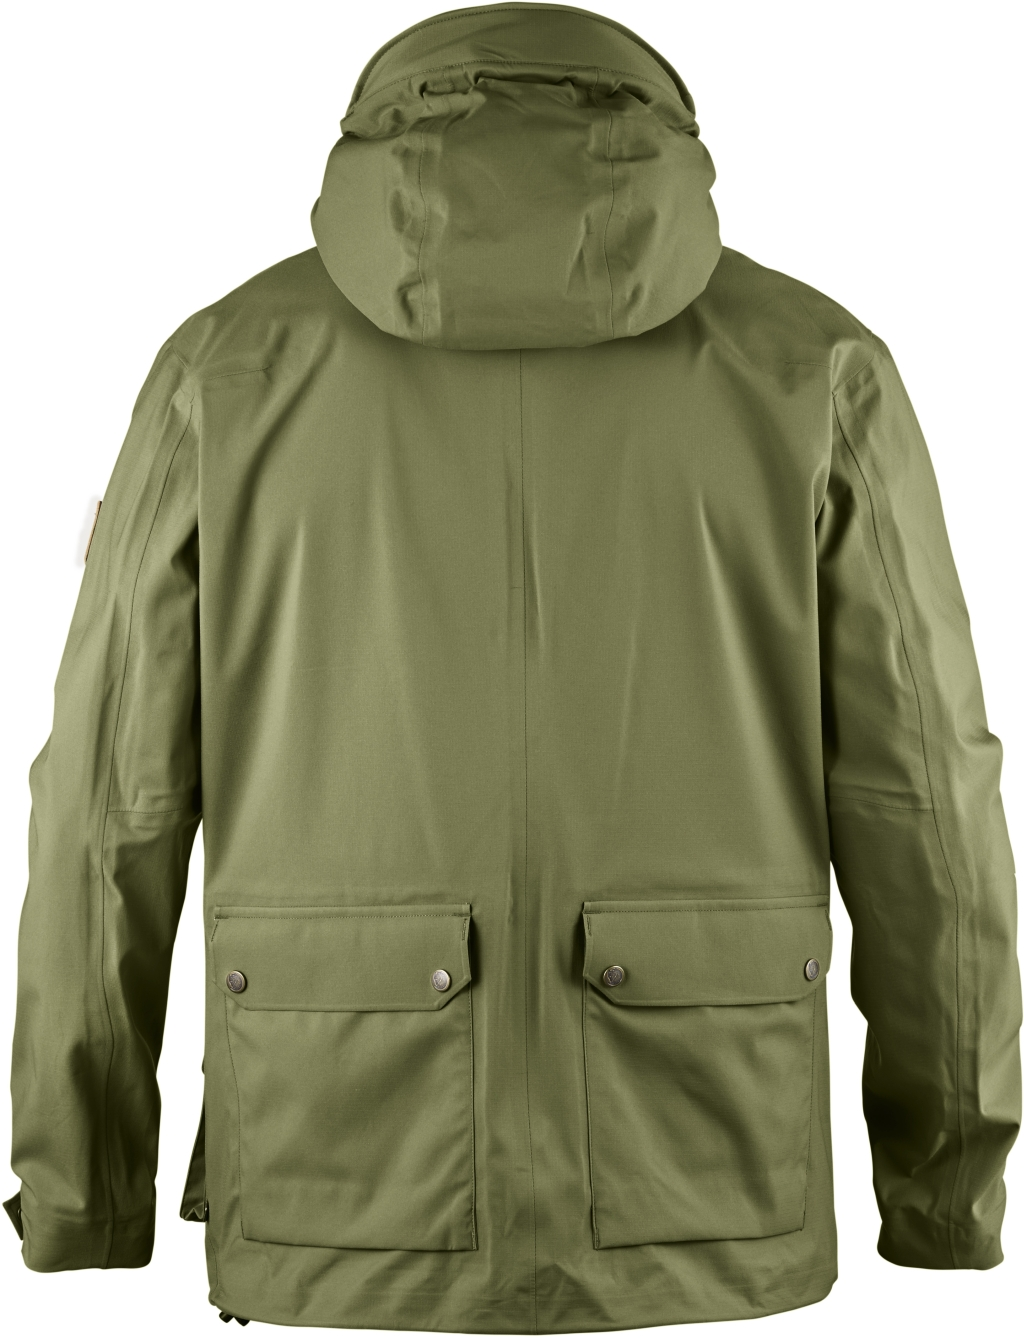 FjallRaven Ovik Eco-Shell Jacket Green-30